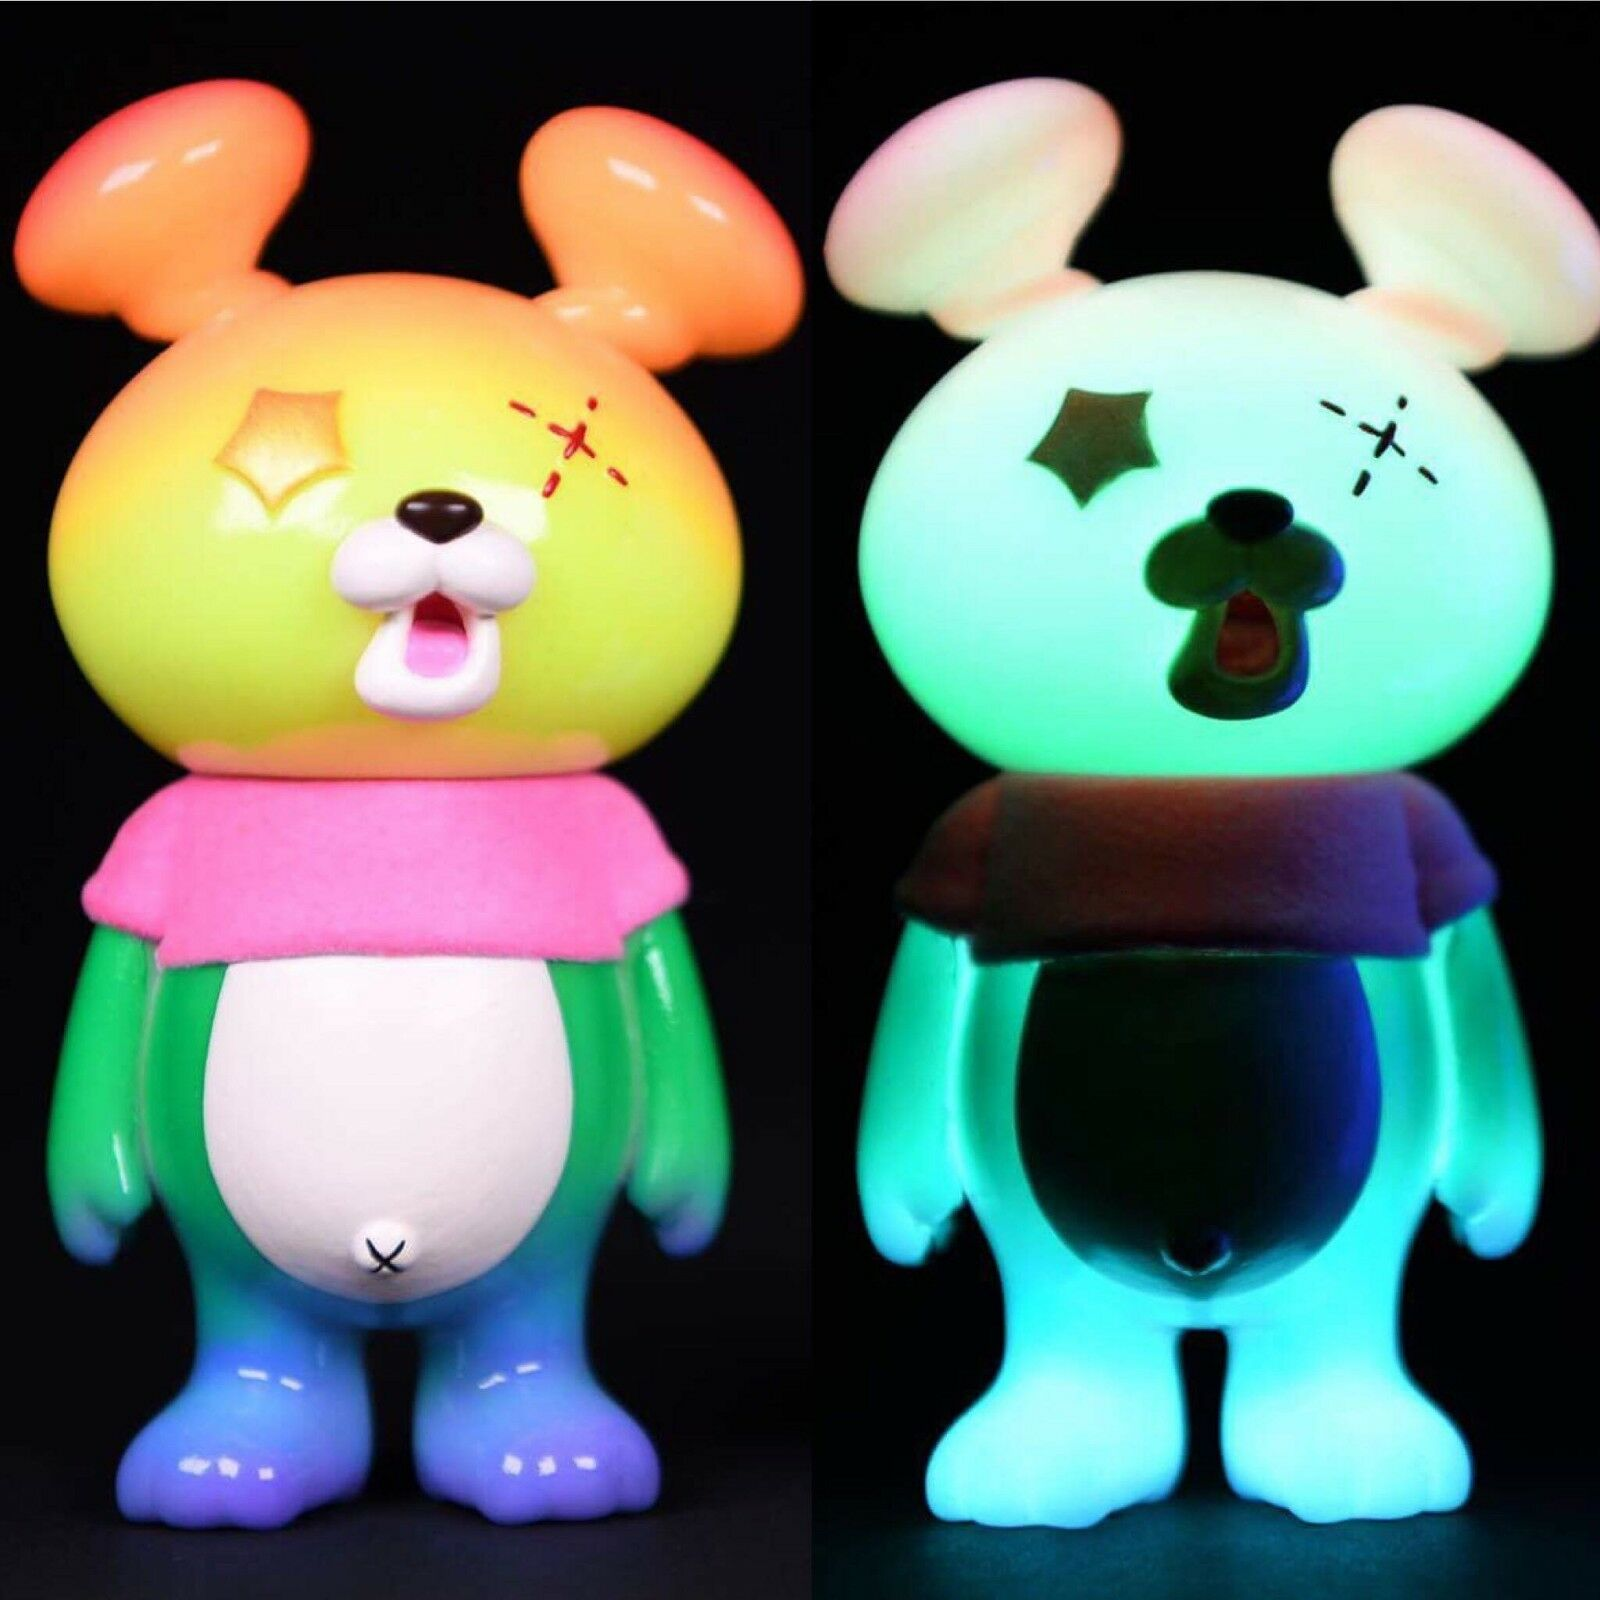 INSTINCTOY BOOO-MA 7th color RAINBOW G.I.D HIROTO OHKUBO ART TOY SOFUBI